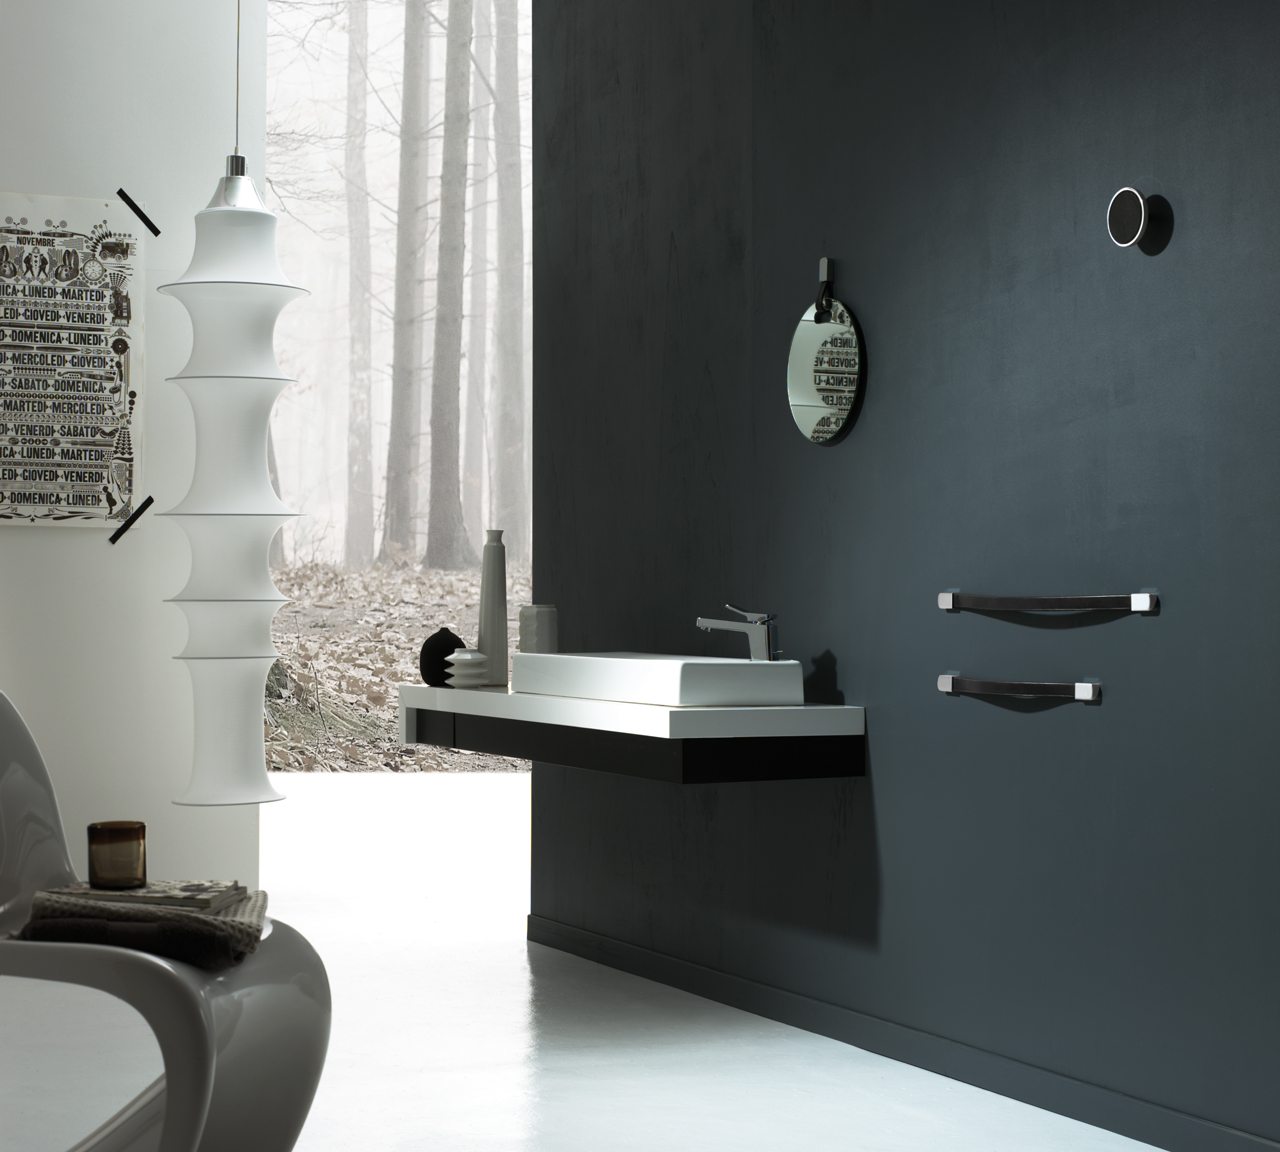 Alcofer srl ferramenta a verona for Accessori bagno moderni